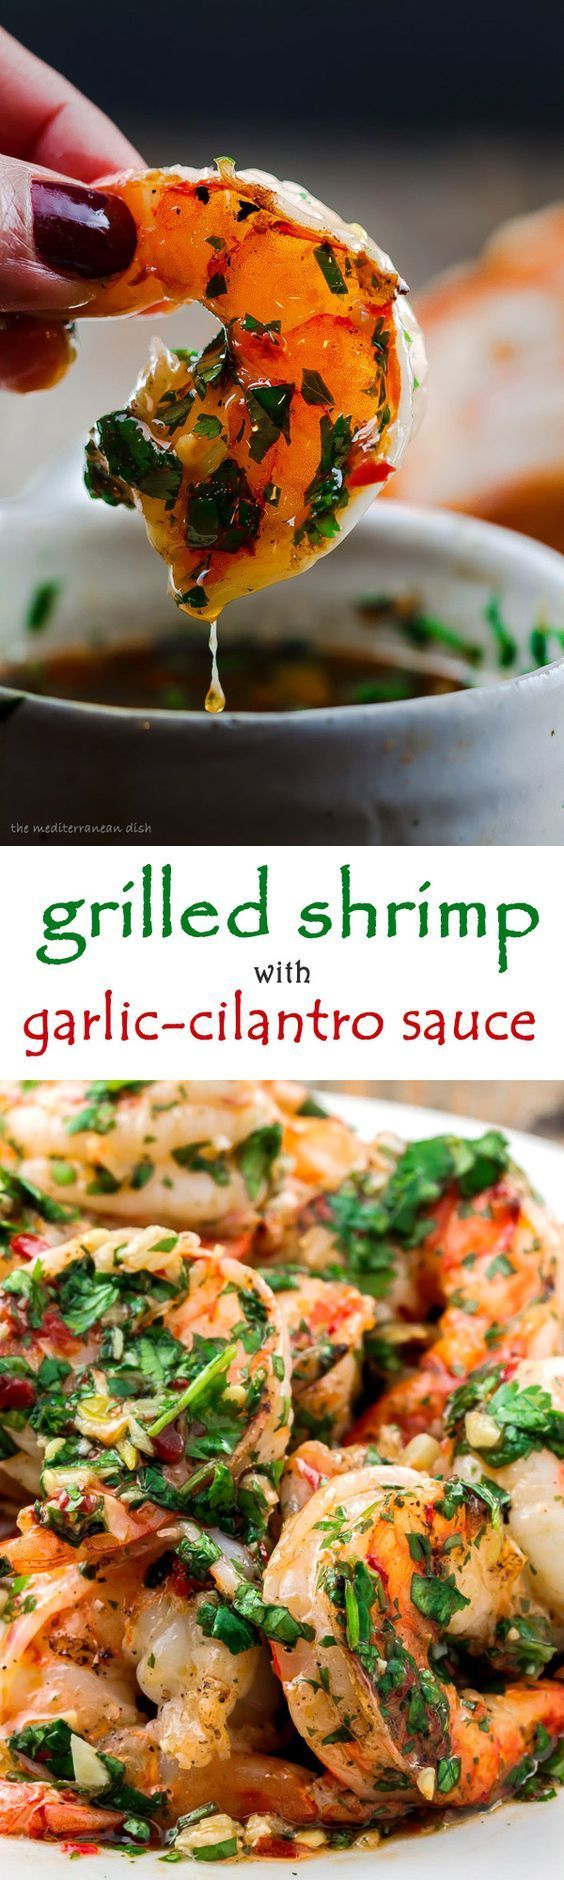 Grilled Shrimp with Roasted Garlic-Cilantro Sauce | The Mediterranean Dish. You'll want to make more of this delicious sauce to toss with quinoa or pasta!  See it on the The Mediterranean Dish blog.